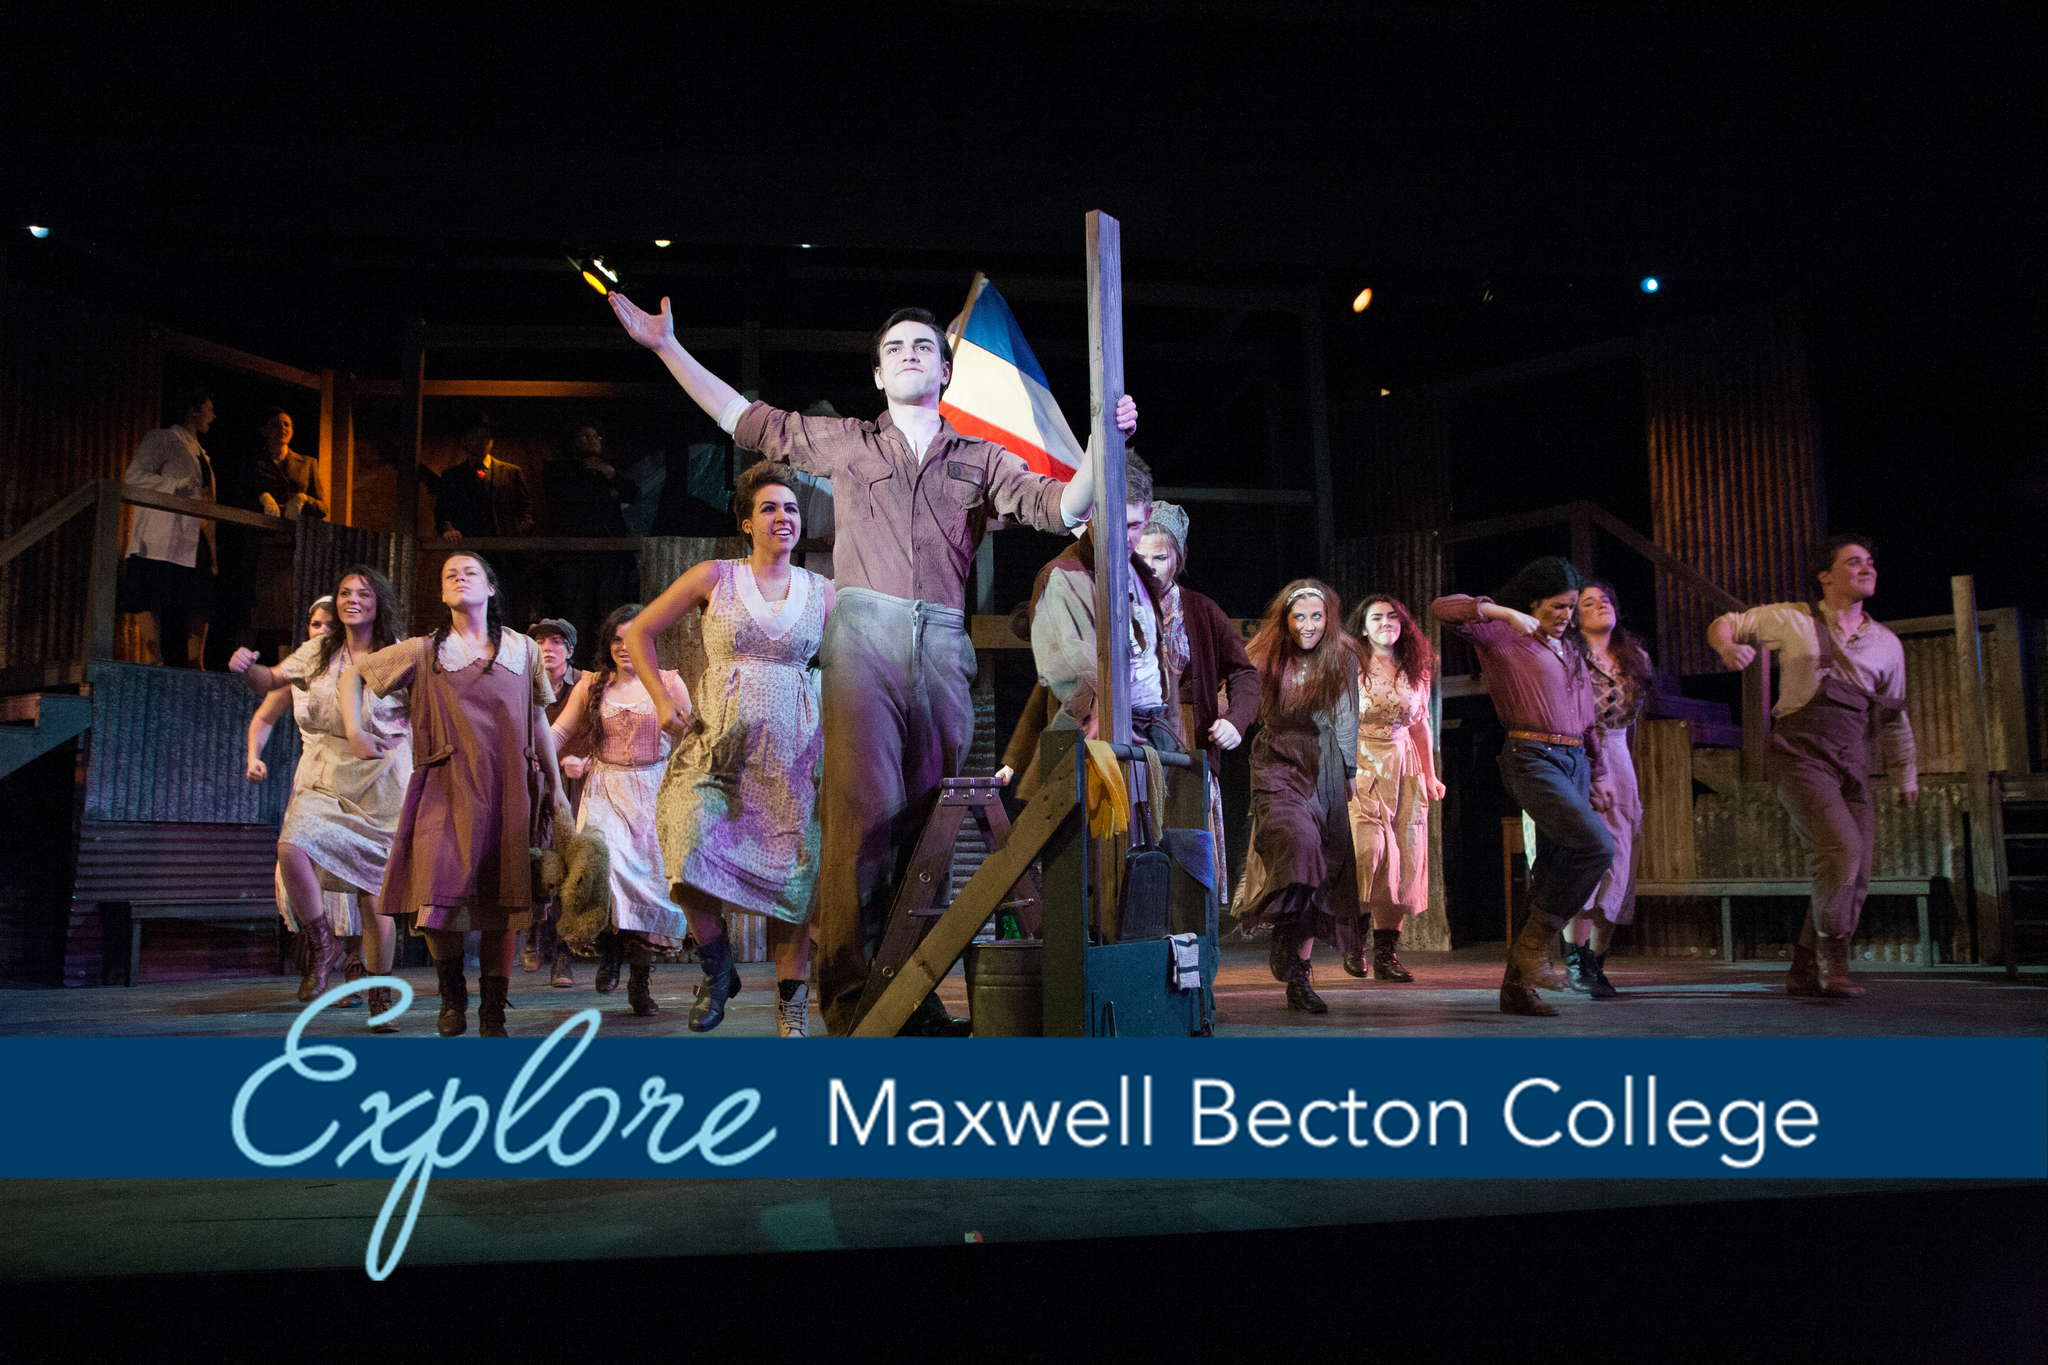 Maxwell_Becton_School_of_A_and_S_banner